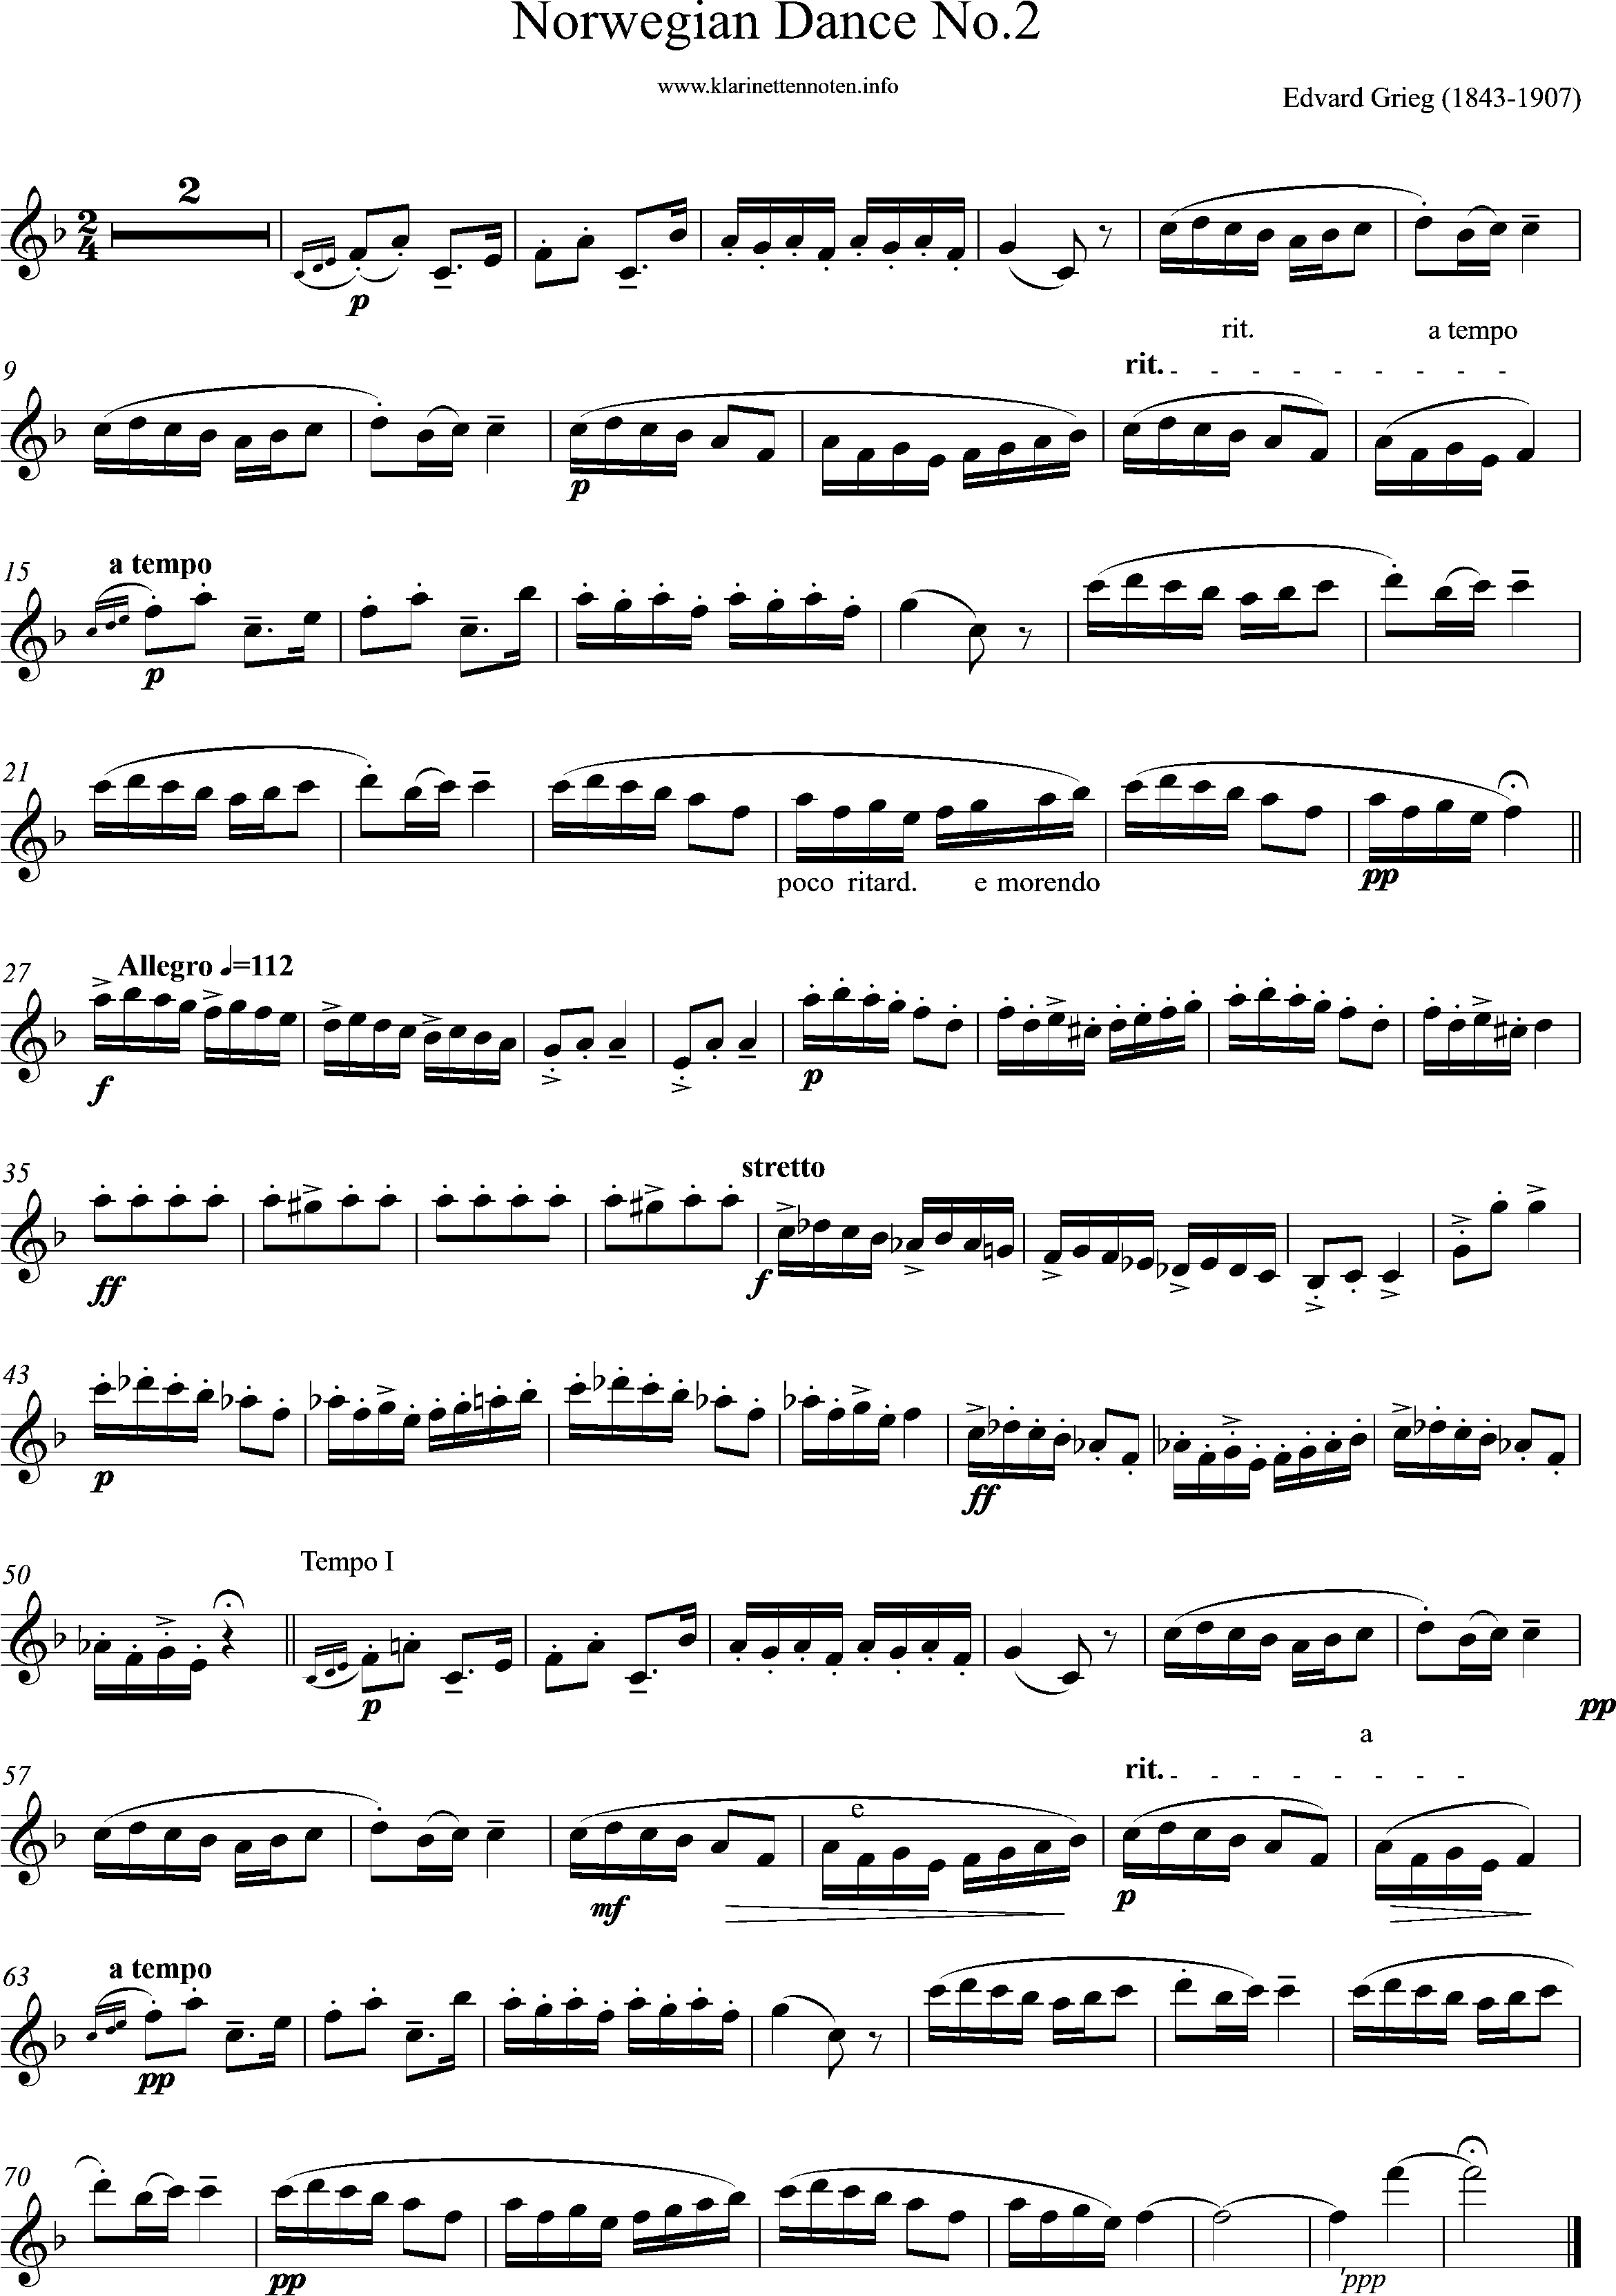 Solopart, Norwegian Dance No2, F-Major